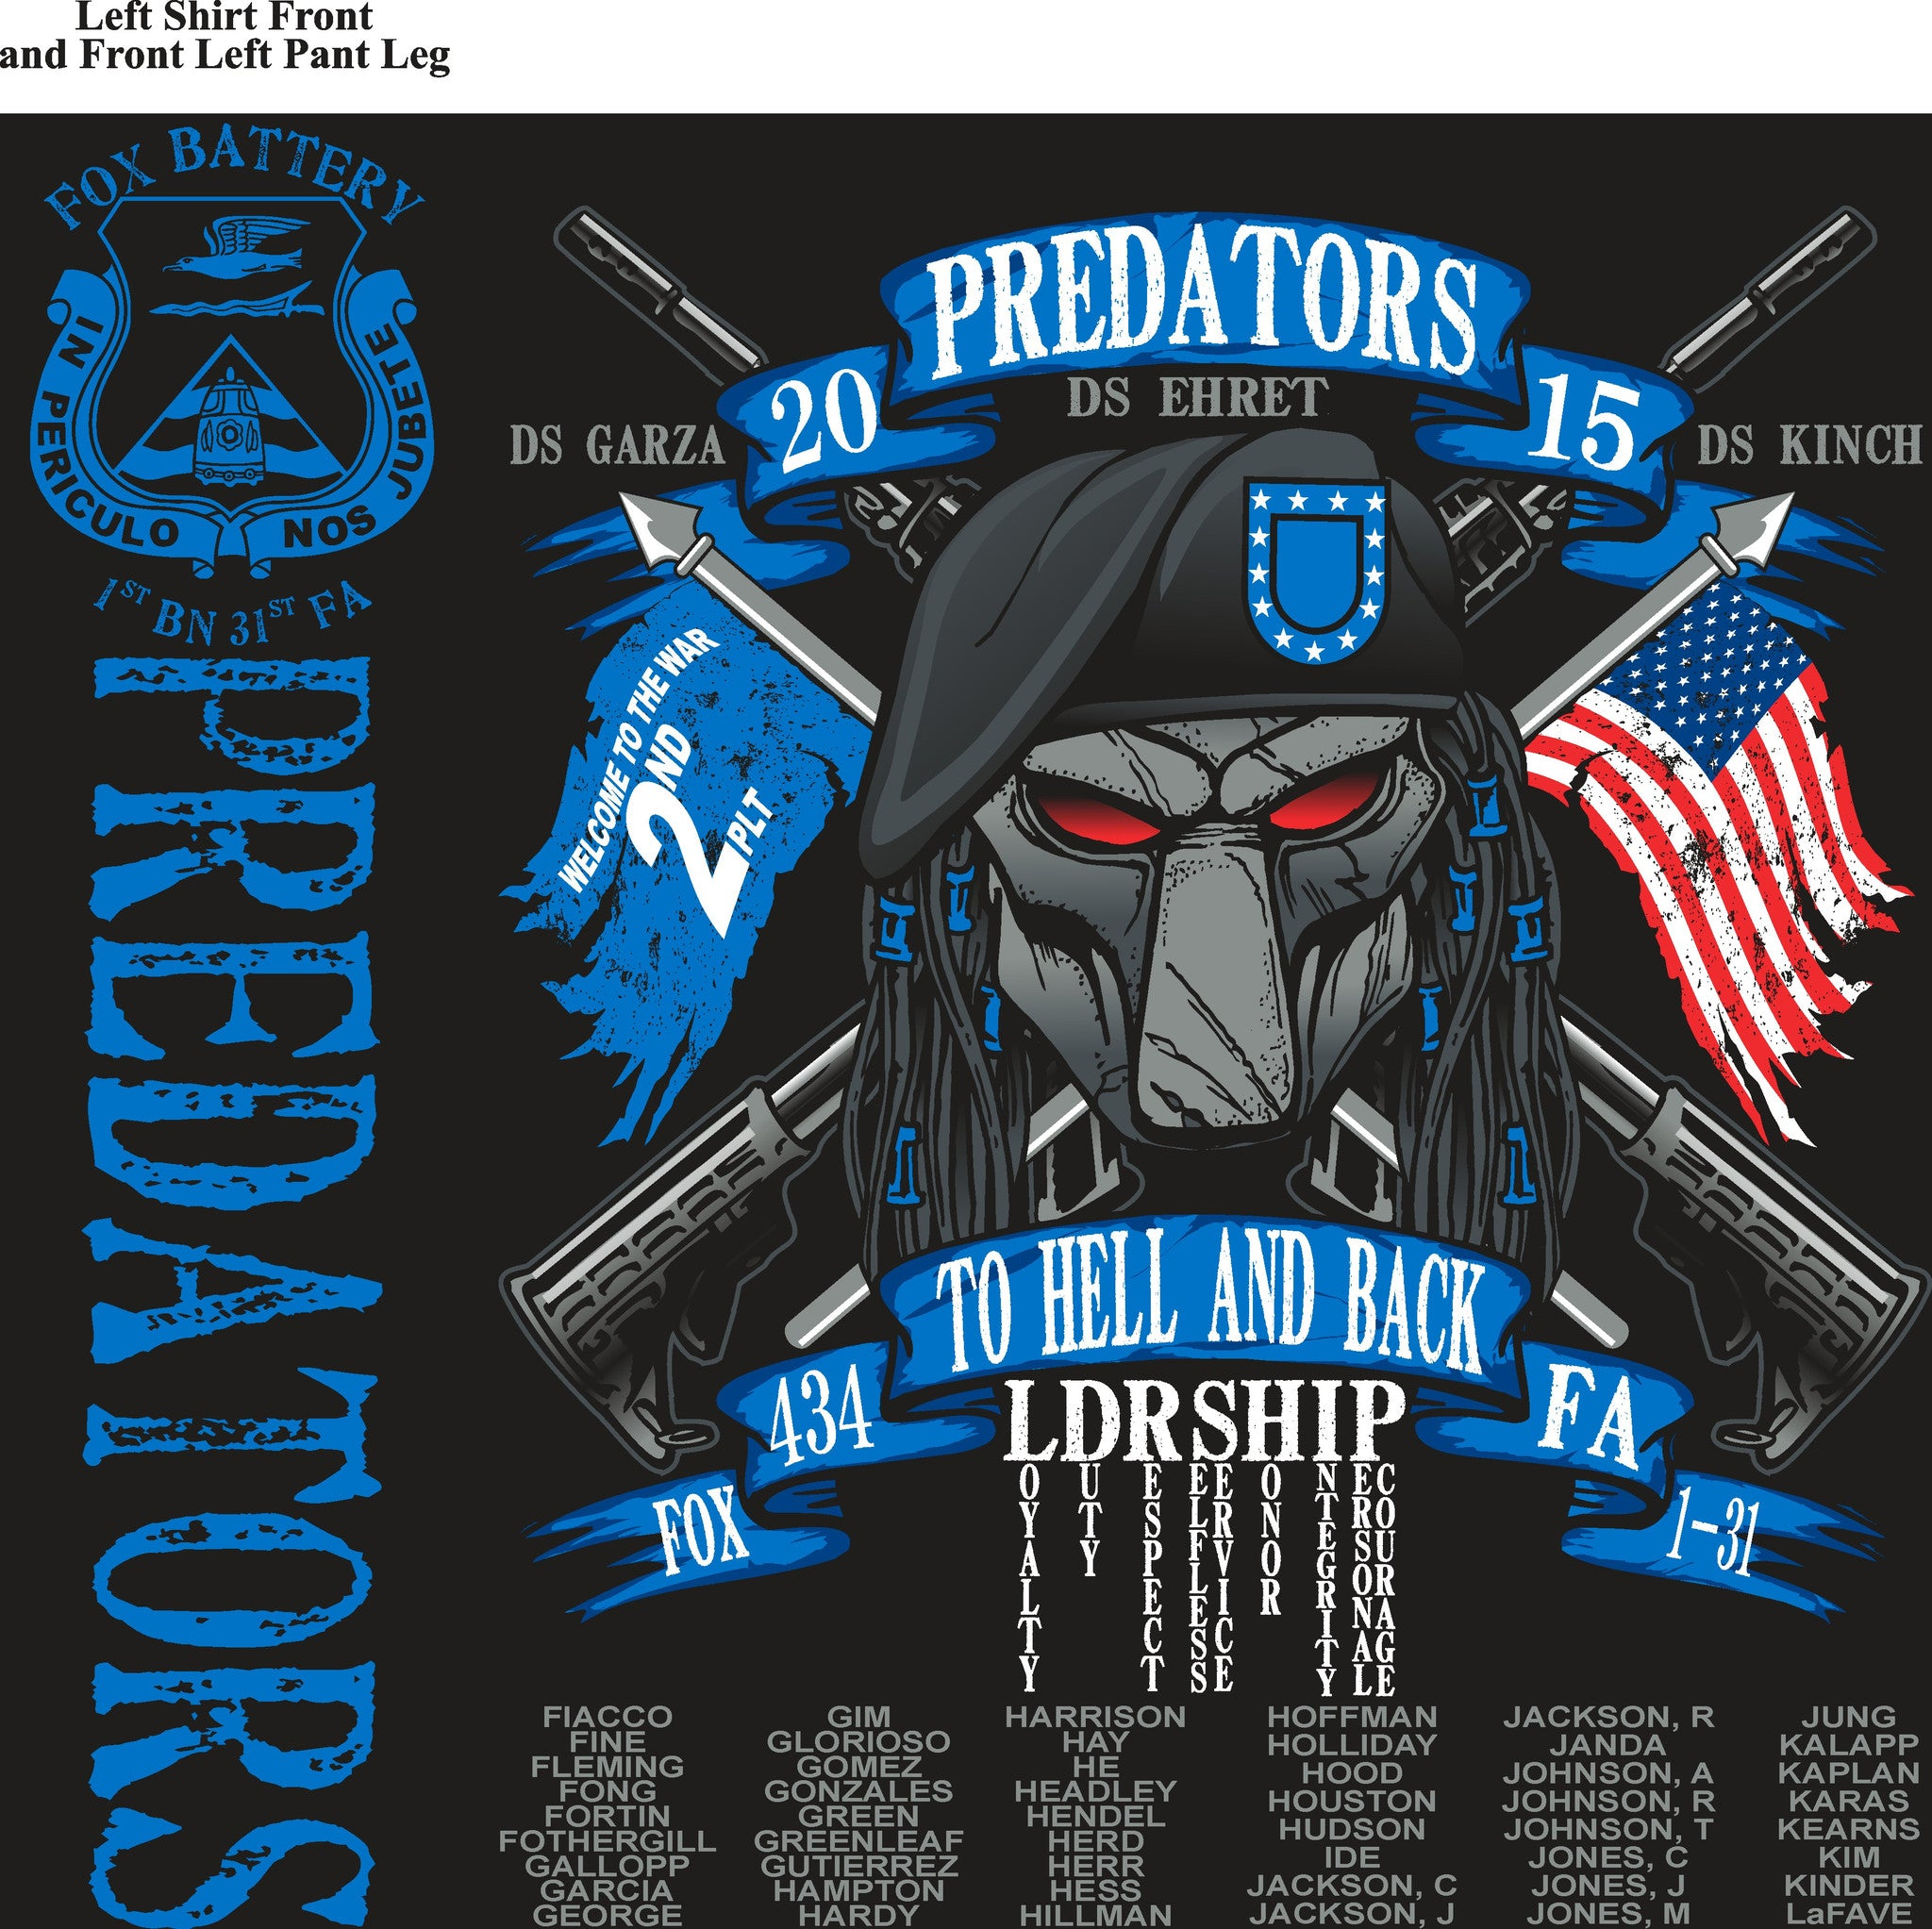 Platoon Shirts FOX 1st 31st PREDATORS JUNE 2015